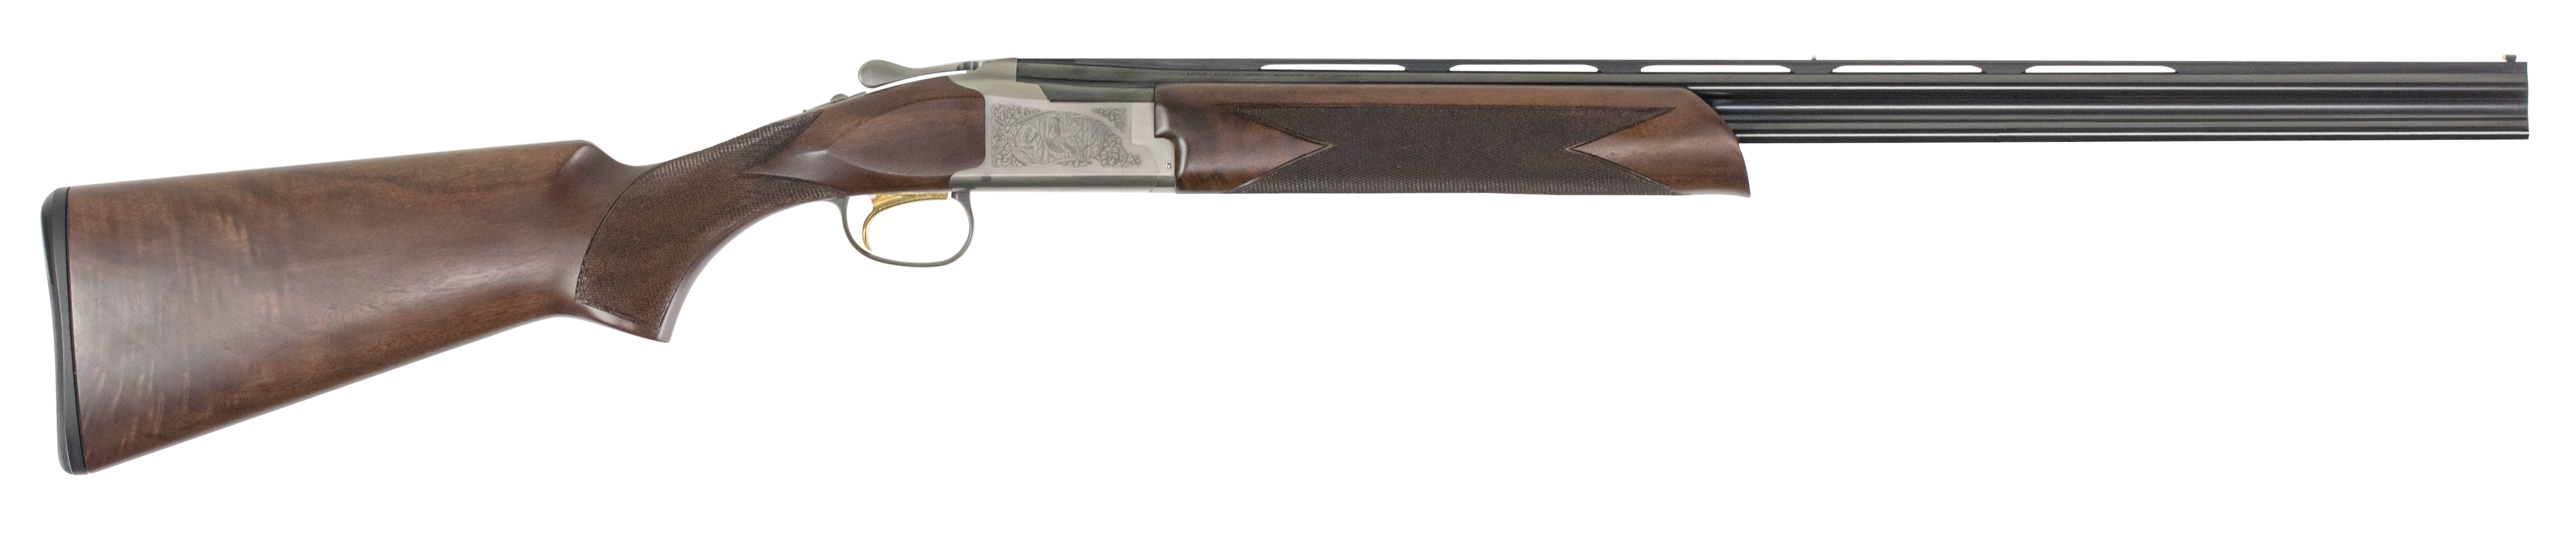 Browning Citori 725 Field Over/Under Shotgun 3'' 410 Bore 26'' Silver Nitride Steel - Grade II Gloss/Grade III Walnut